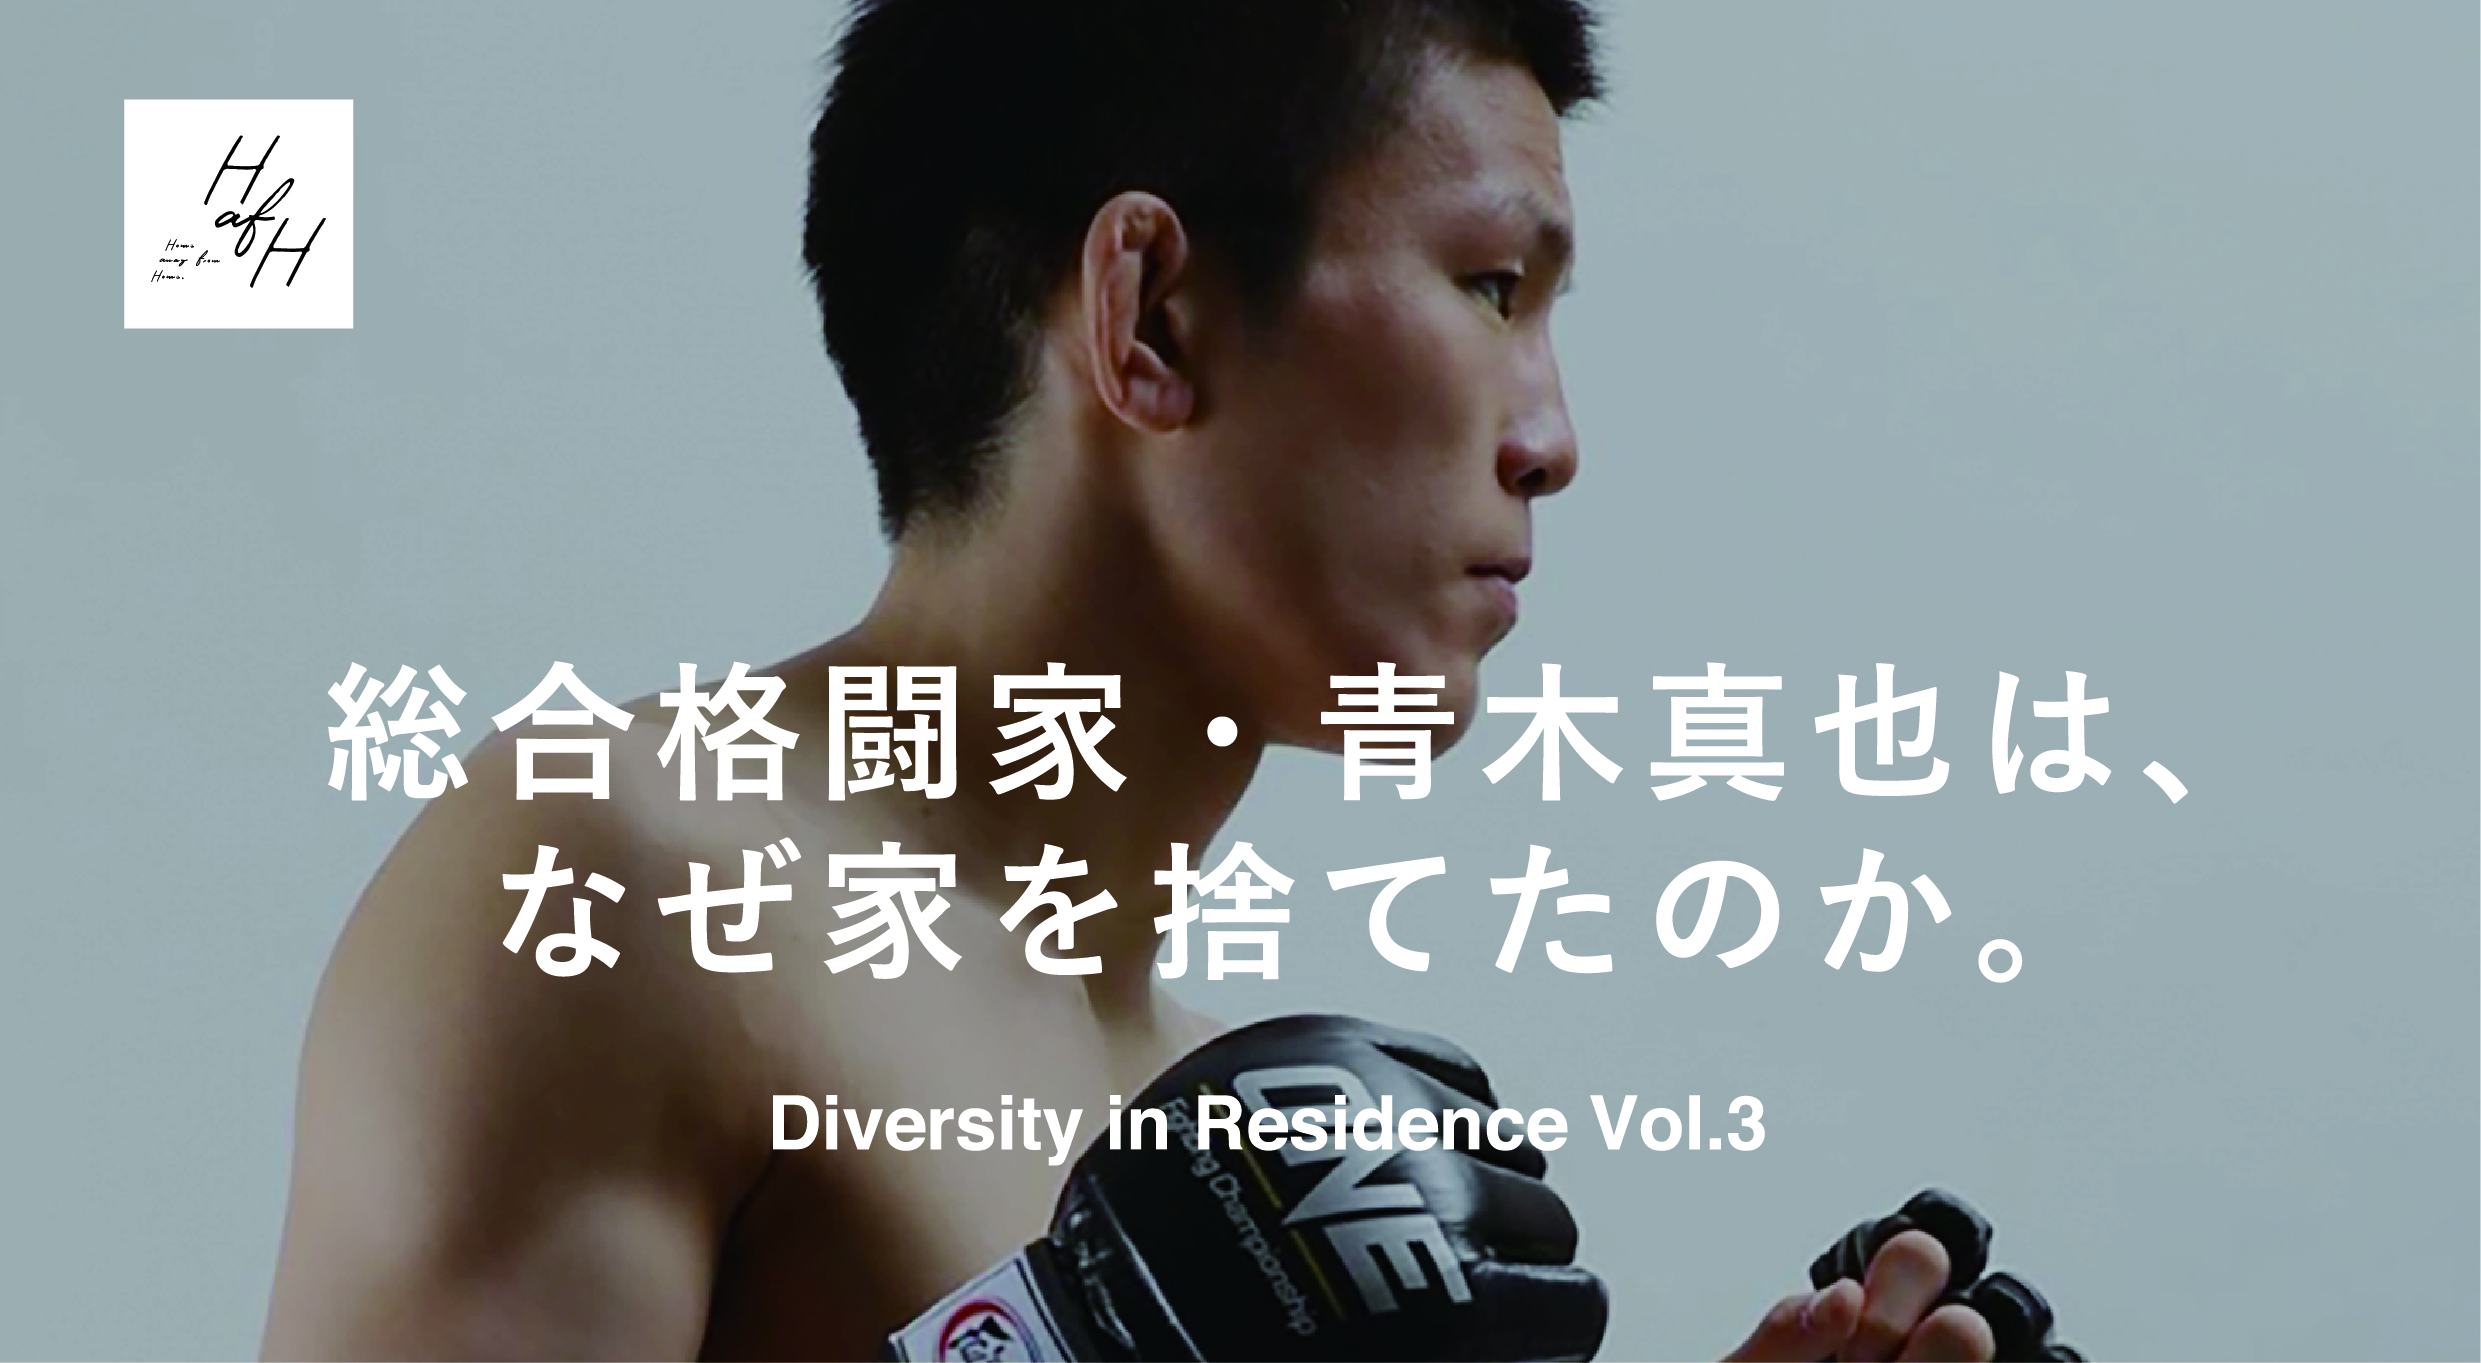 HafH Diversity in Residence Project Report Vol.3  – Why MMA Fighter Shinya Aoki gave up his house –